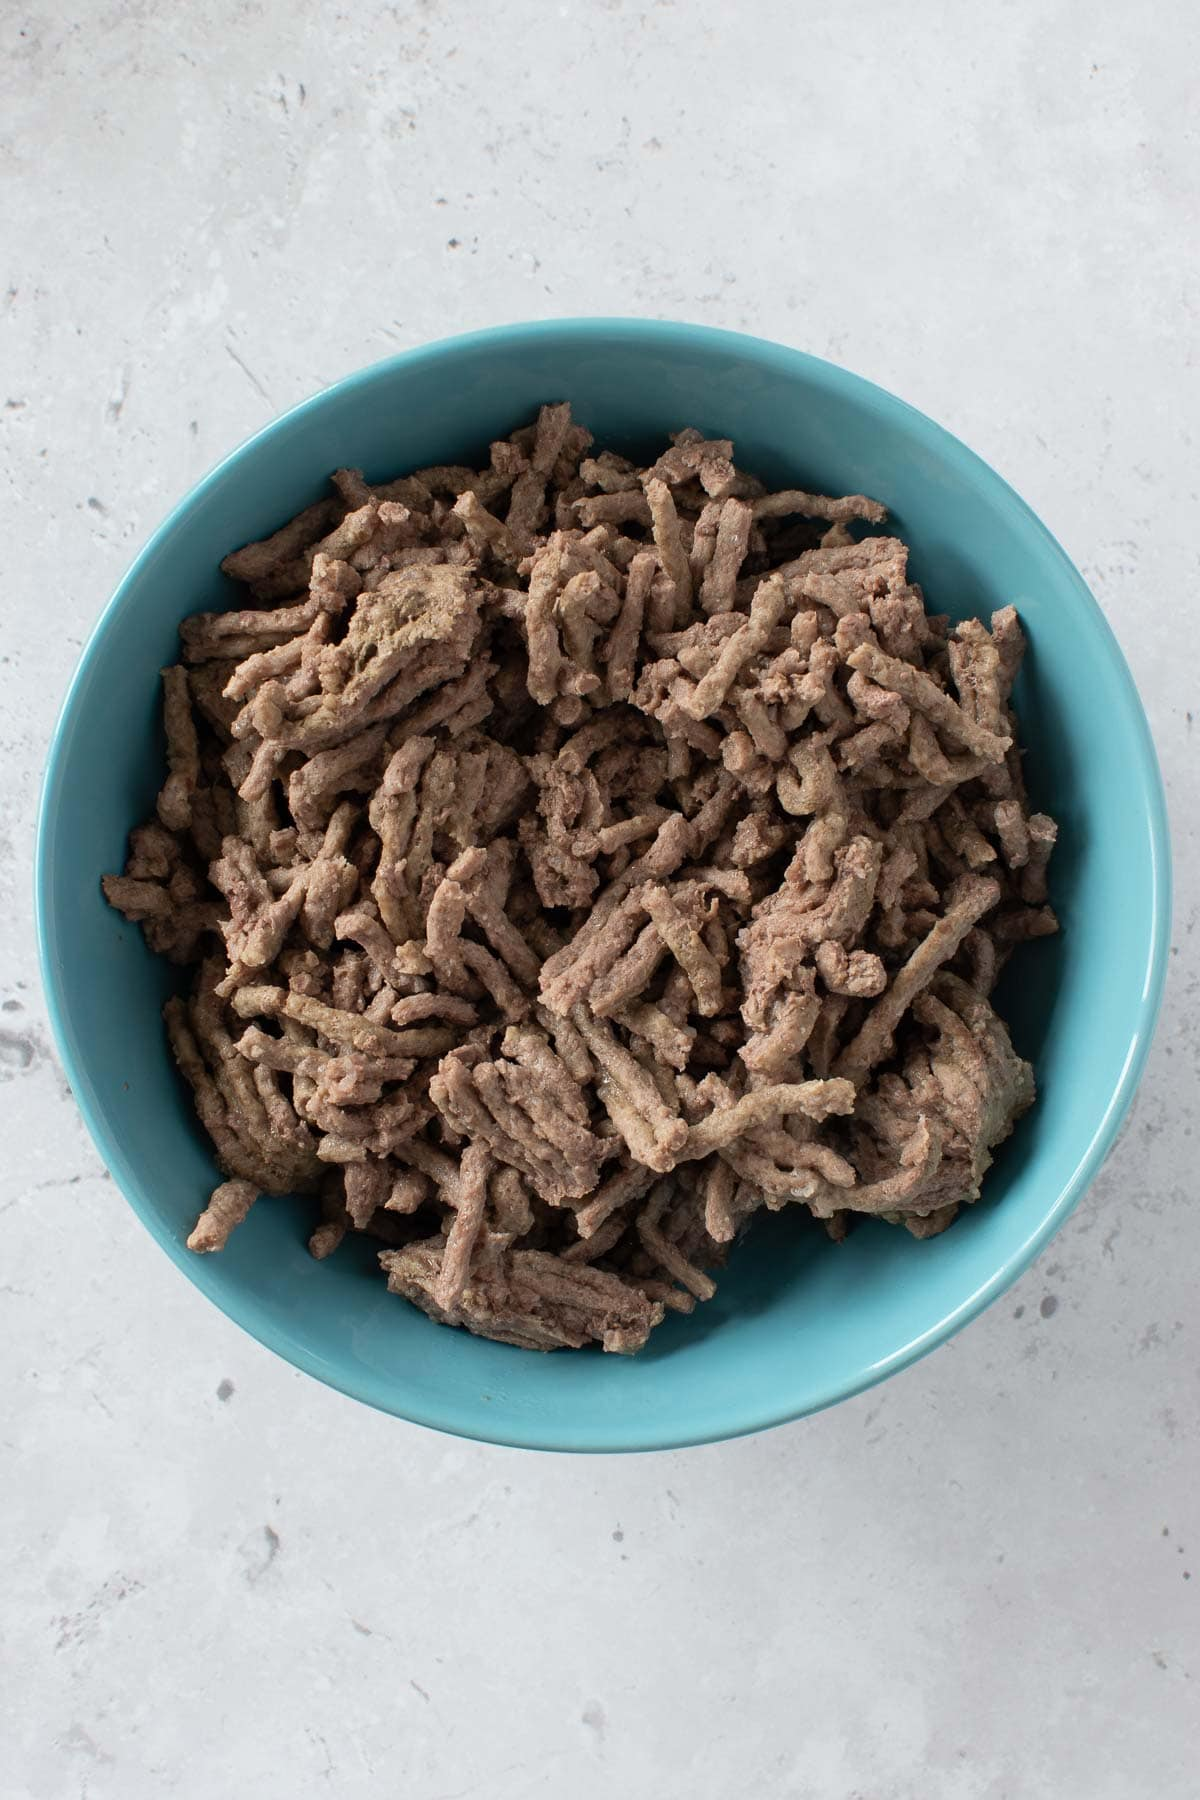 A bowl of pressure cooked ground beef.